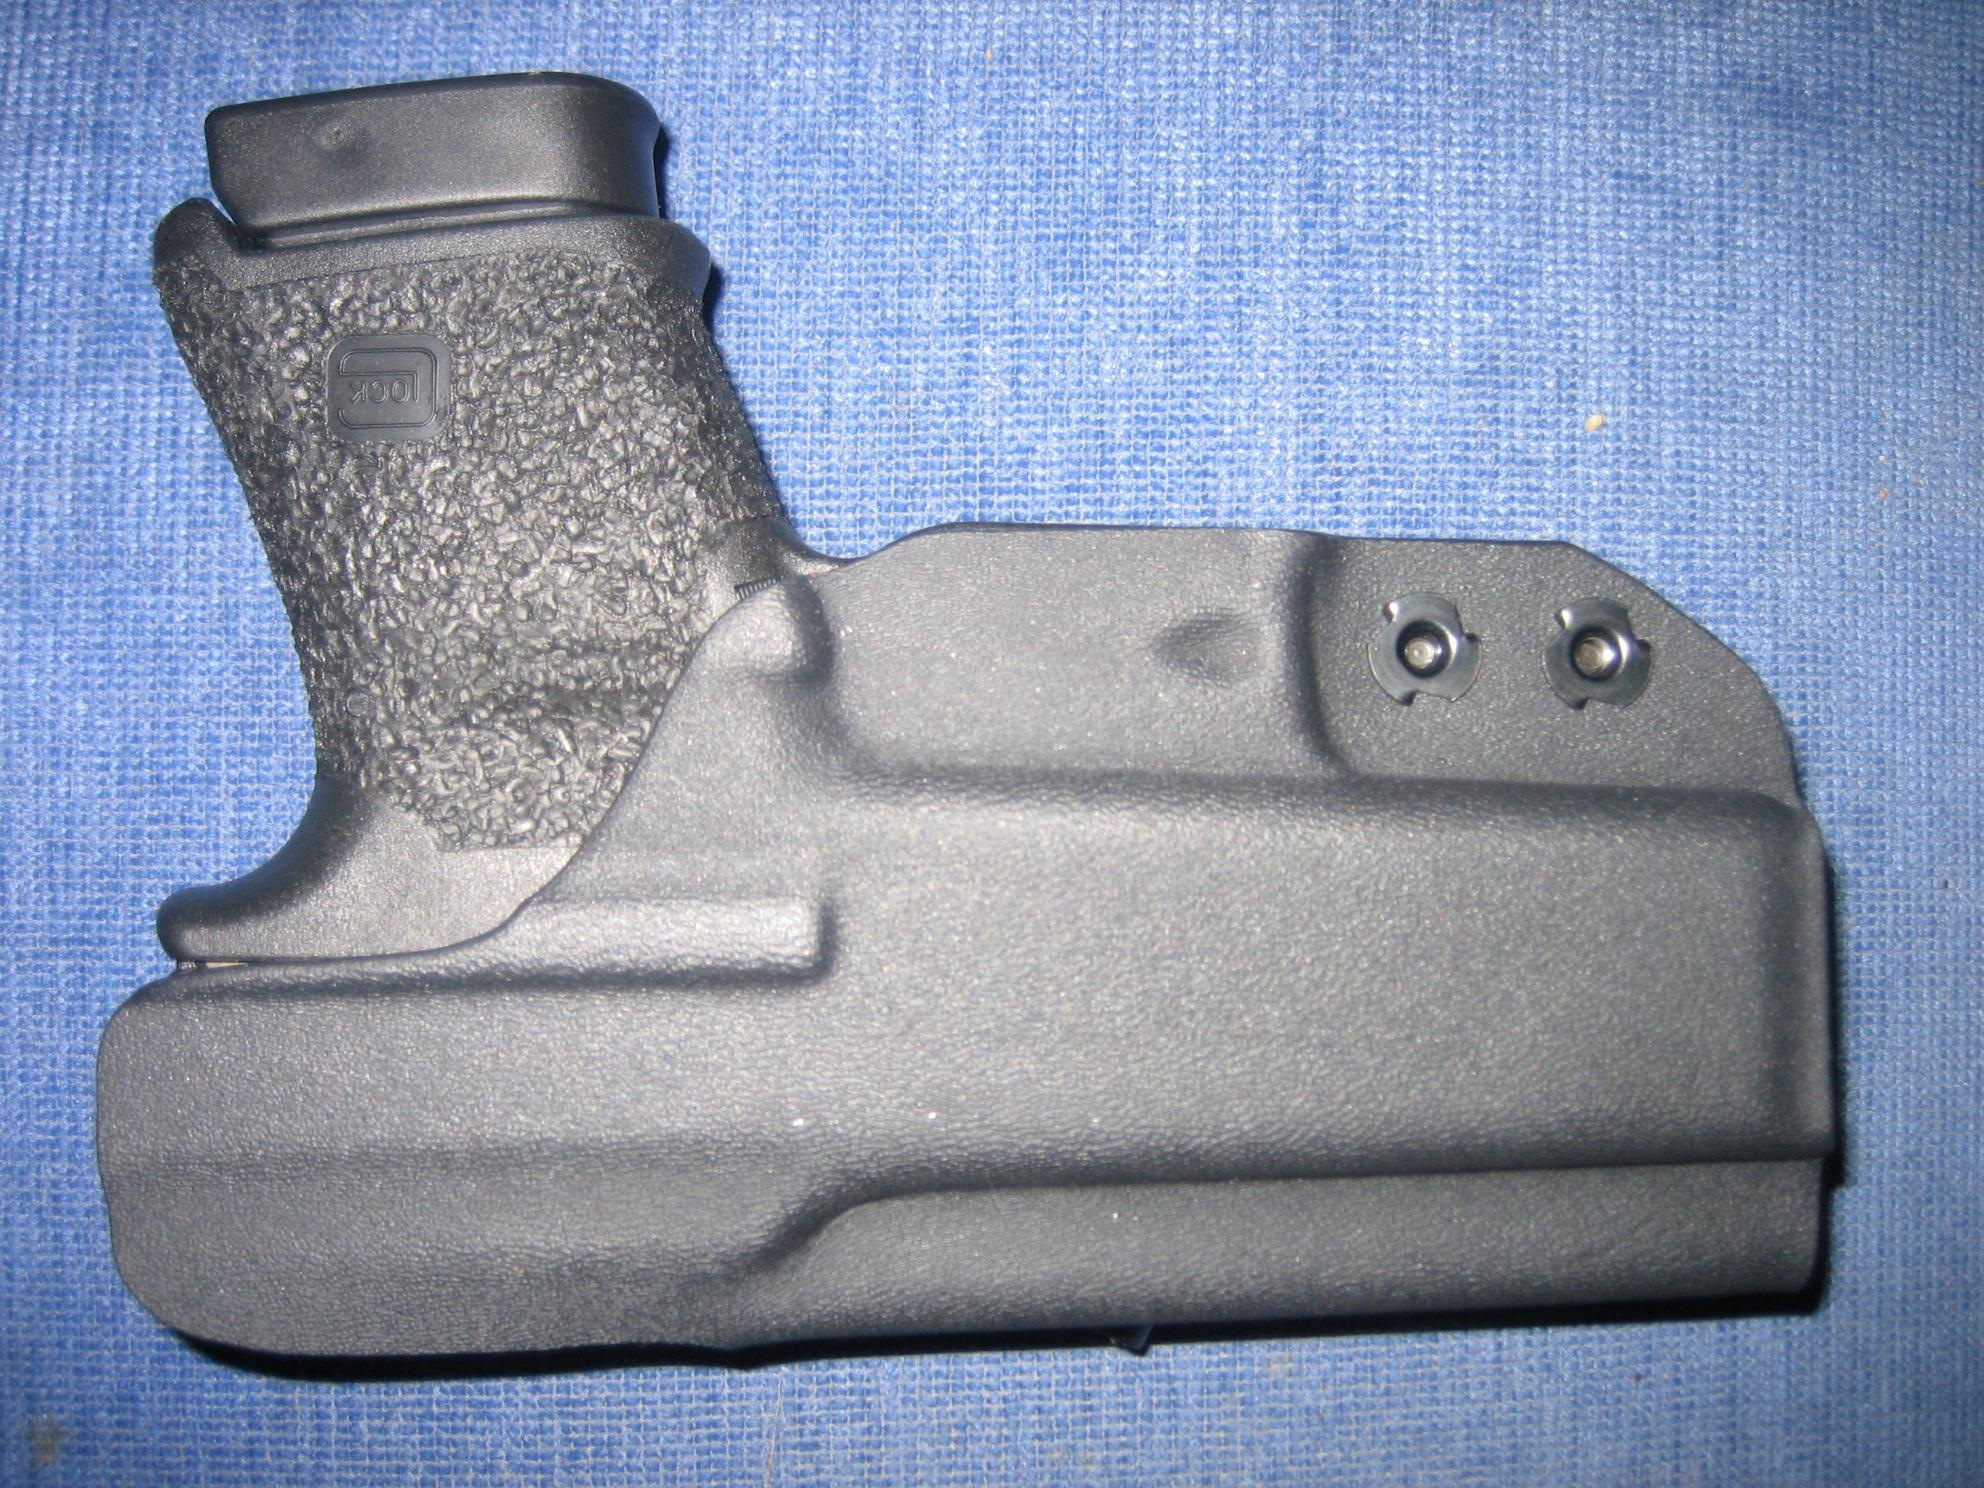 Glock G36 w/ grip reduction-grip-reduction-008.jpg